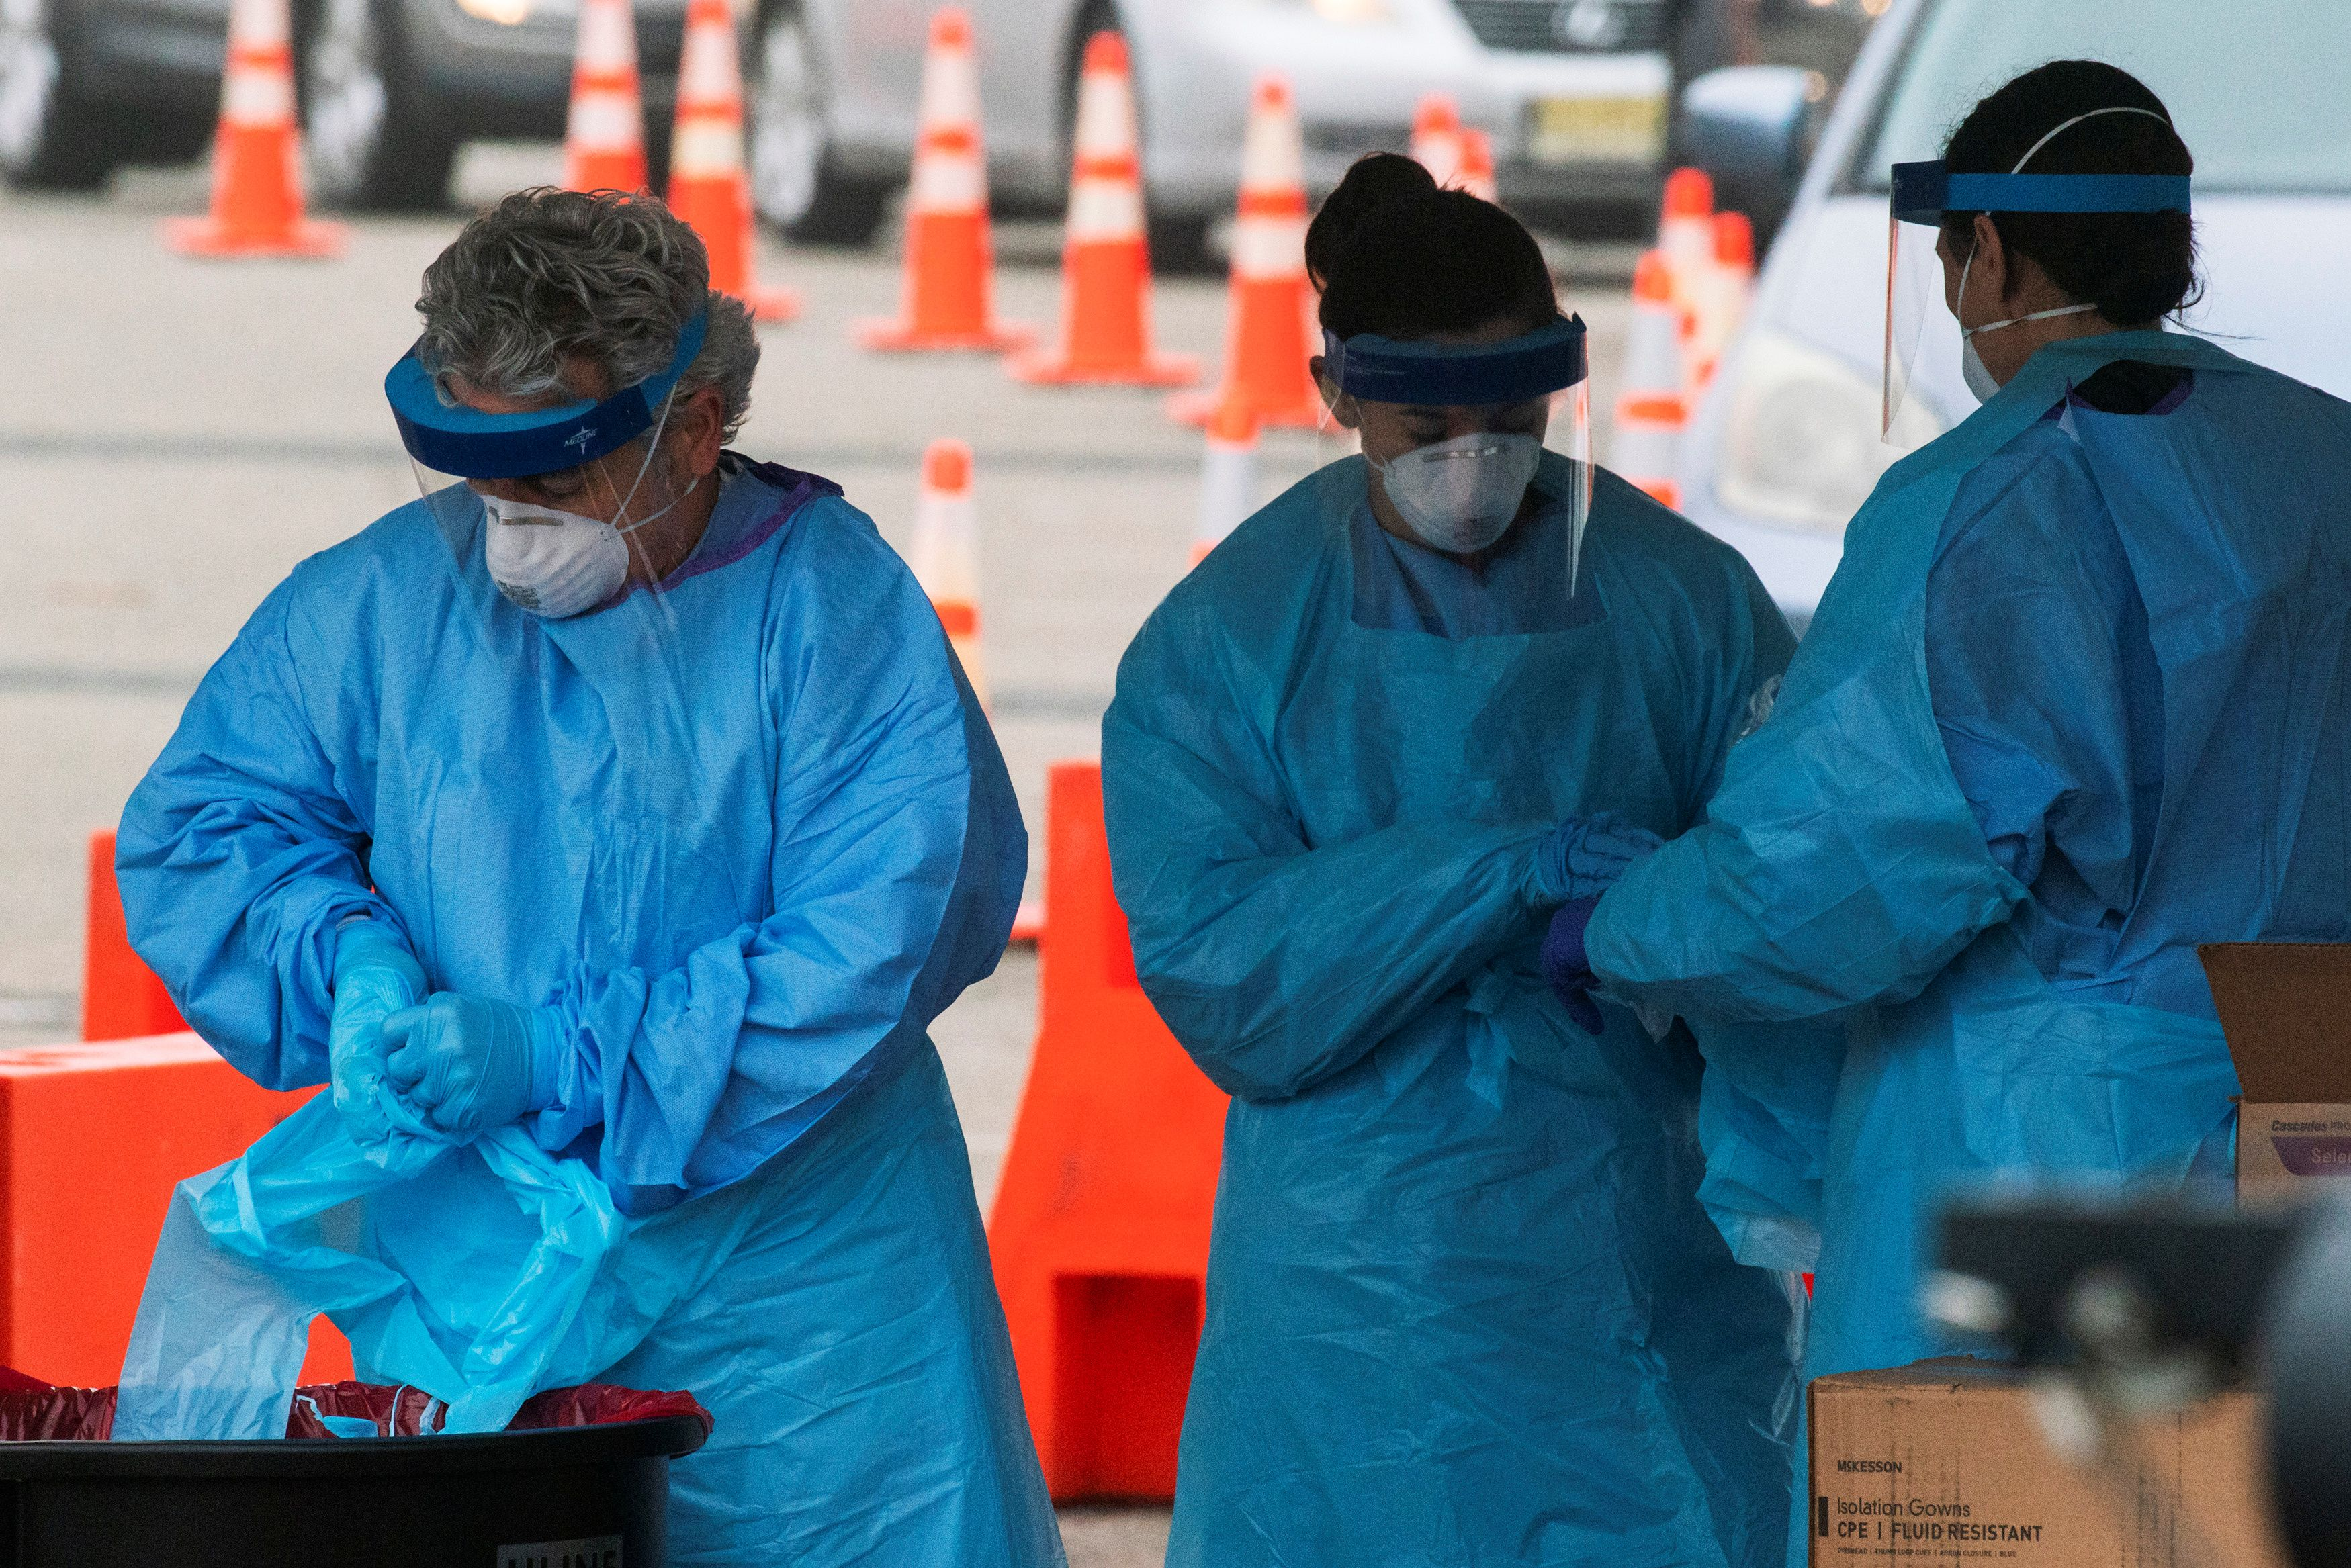 Health workers remove their gloves as they perform testing at a new drive-thru coronavirus disease (COVID-19) testing center at Bergen Community College in Paramus, New Jersey